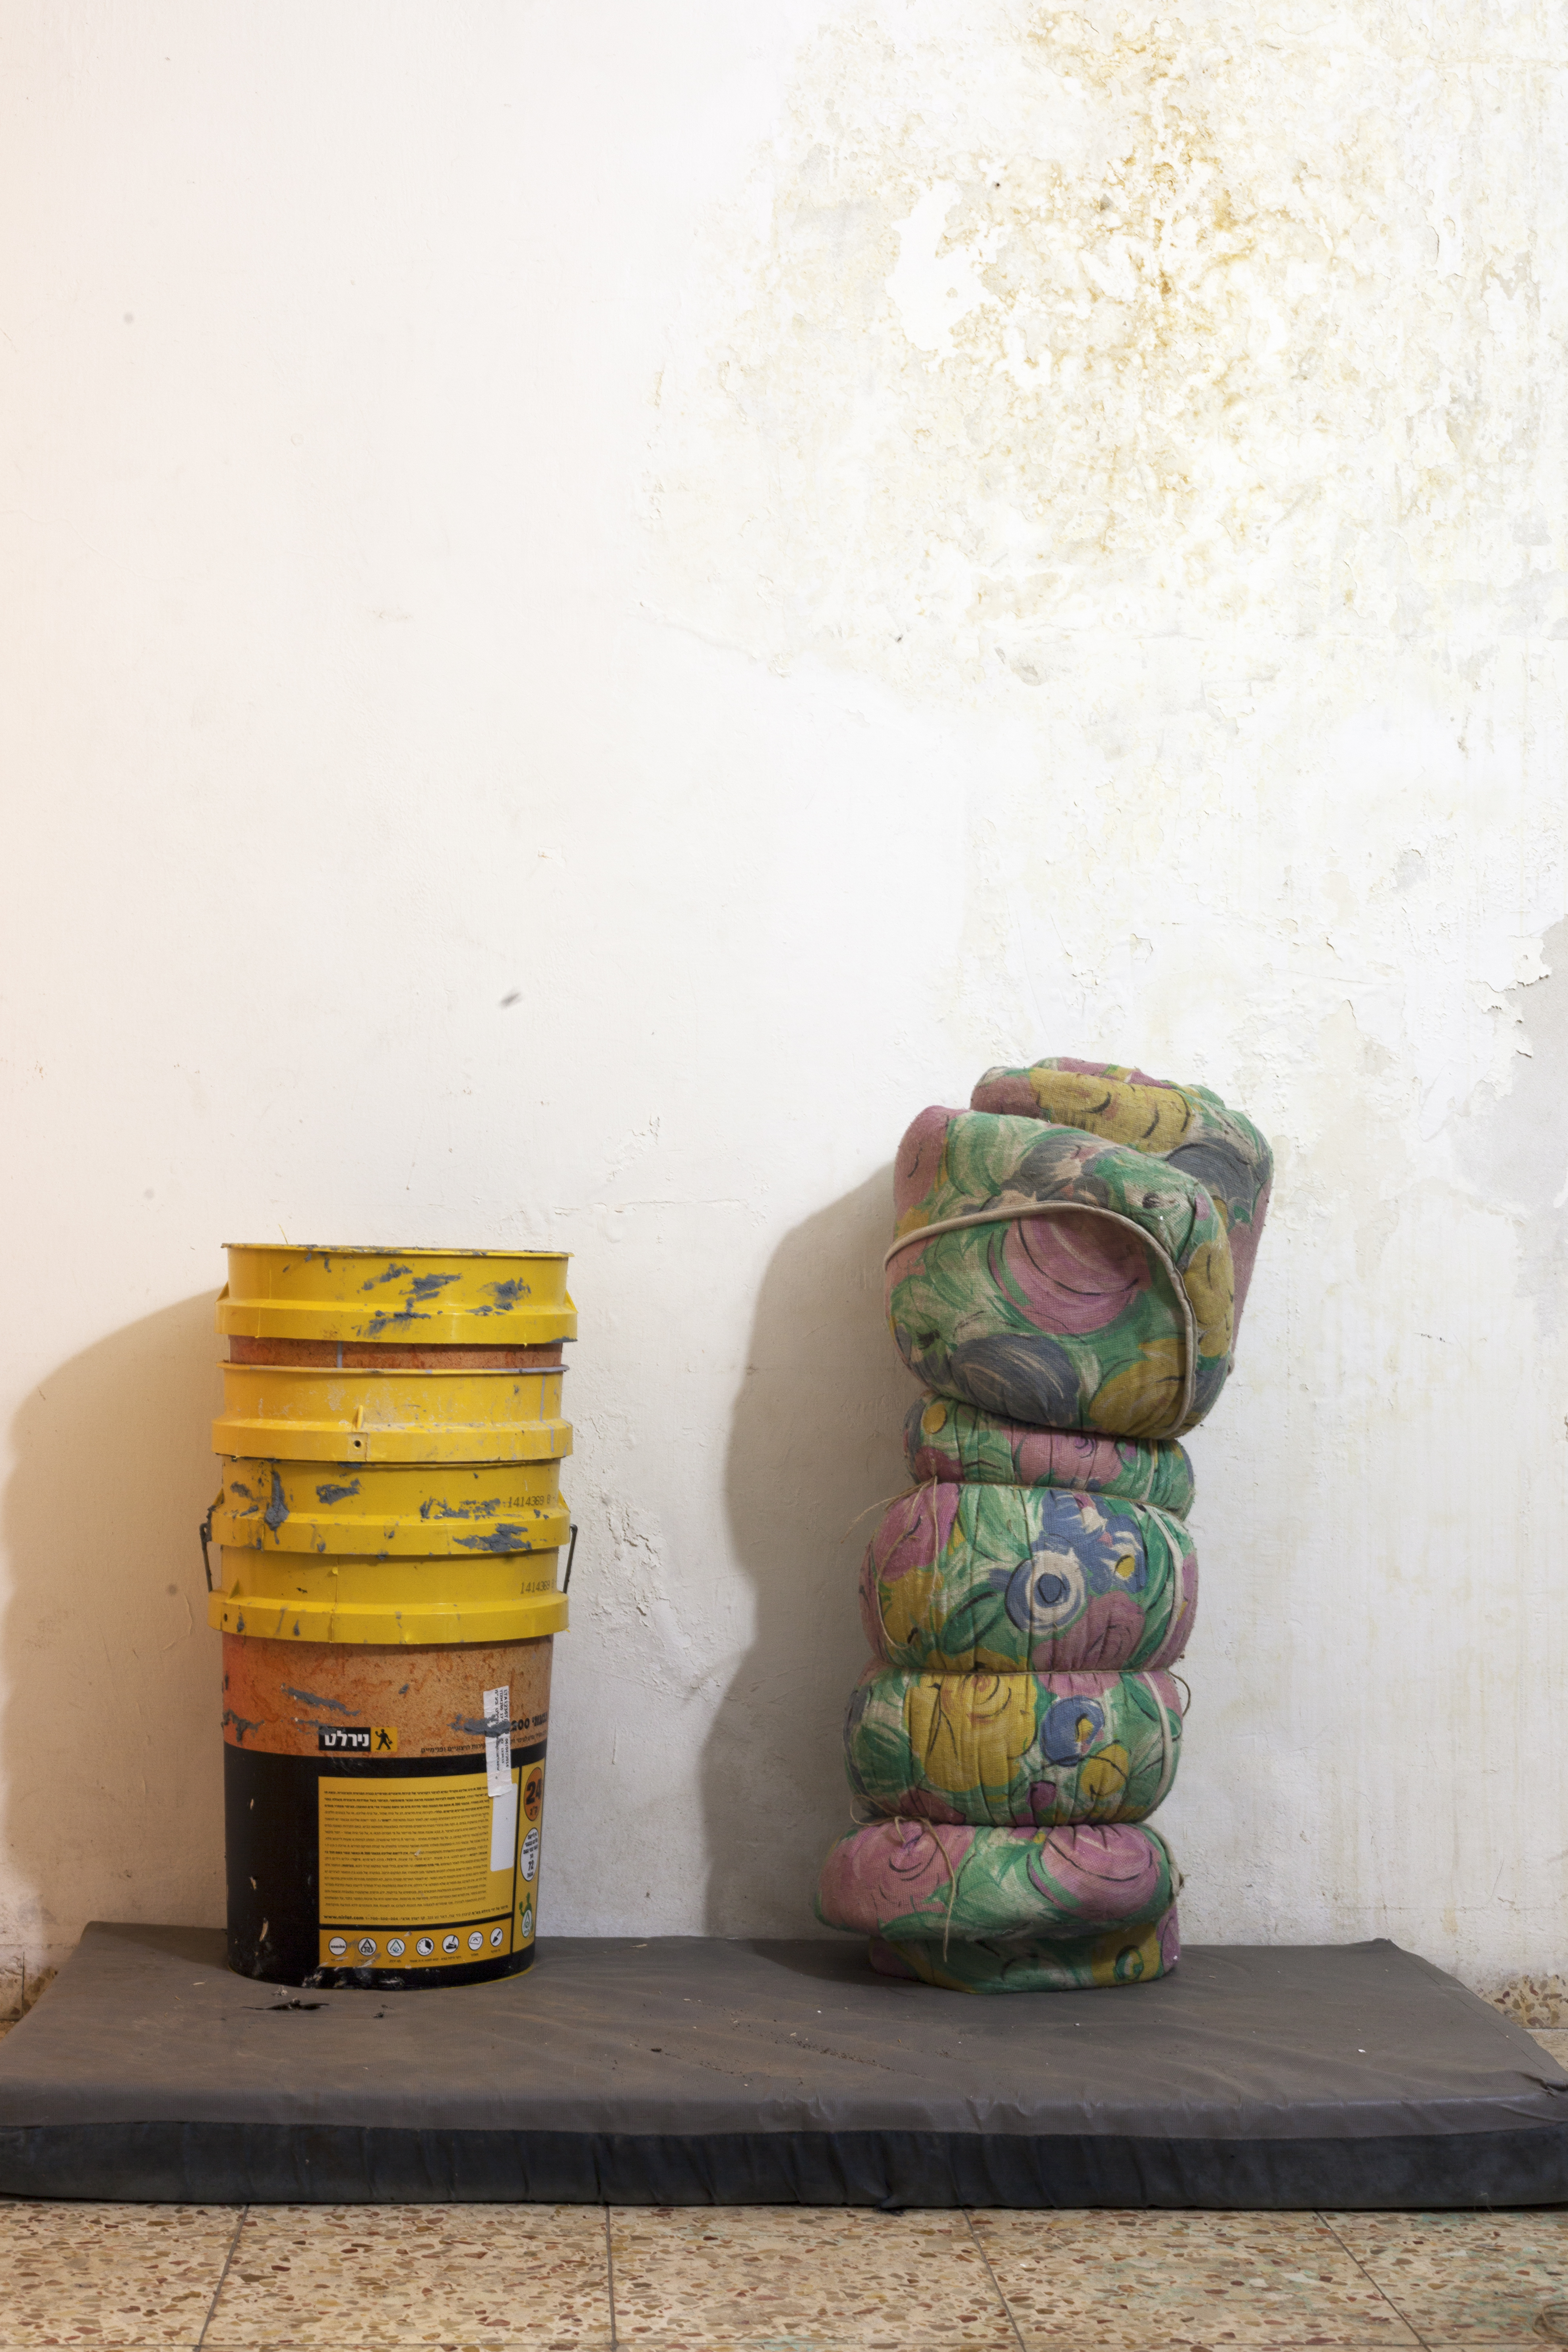 Bucket and mattress, 2014, 33x50 cm